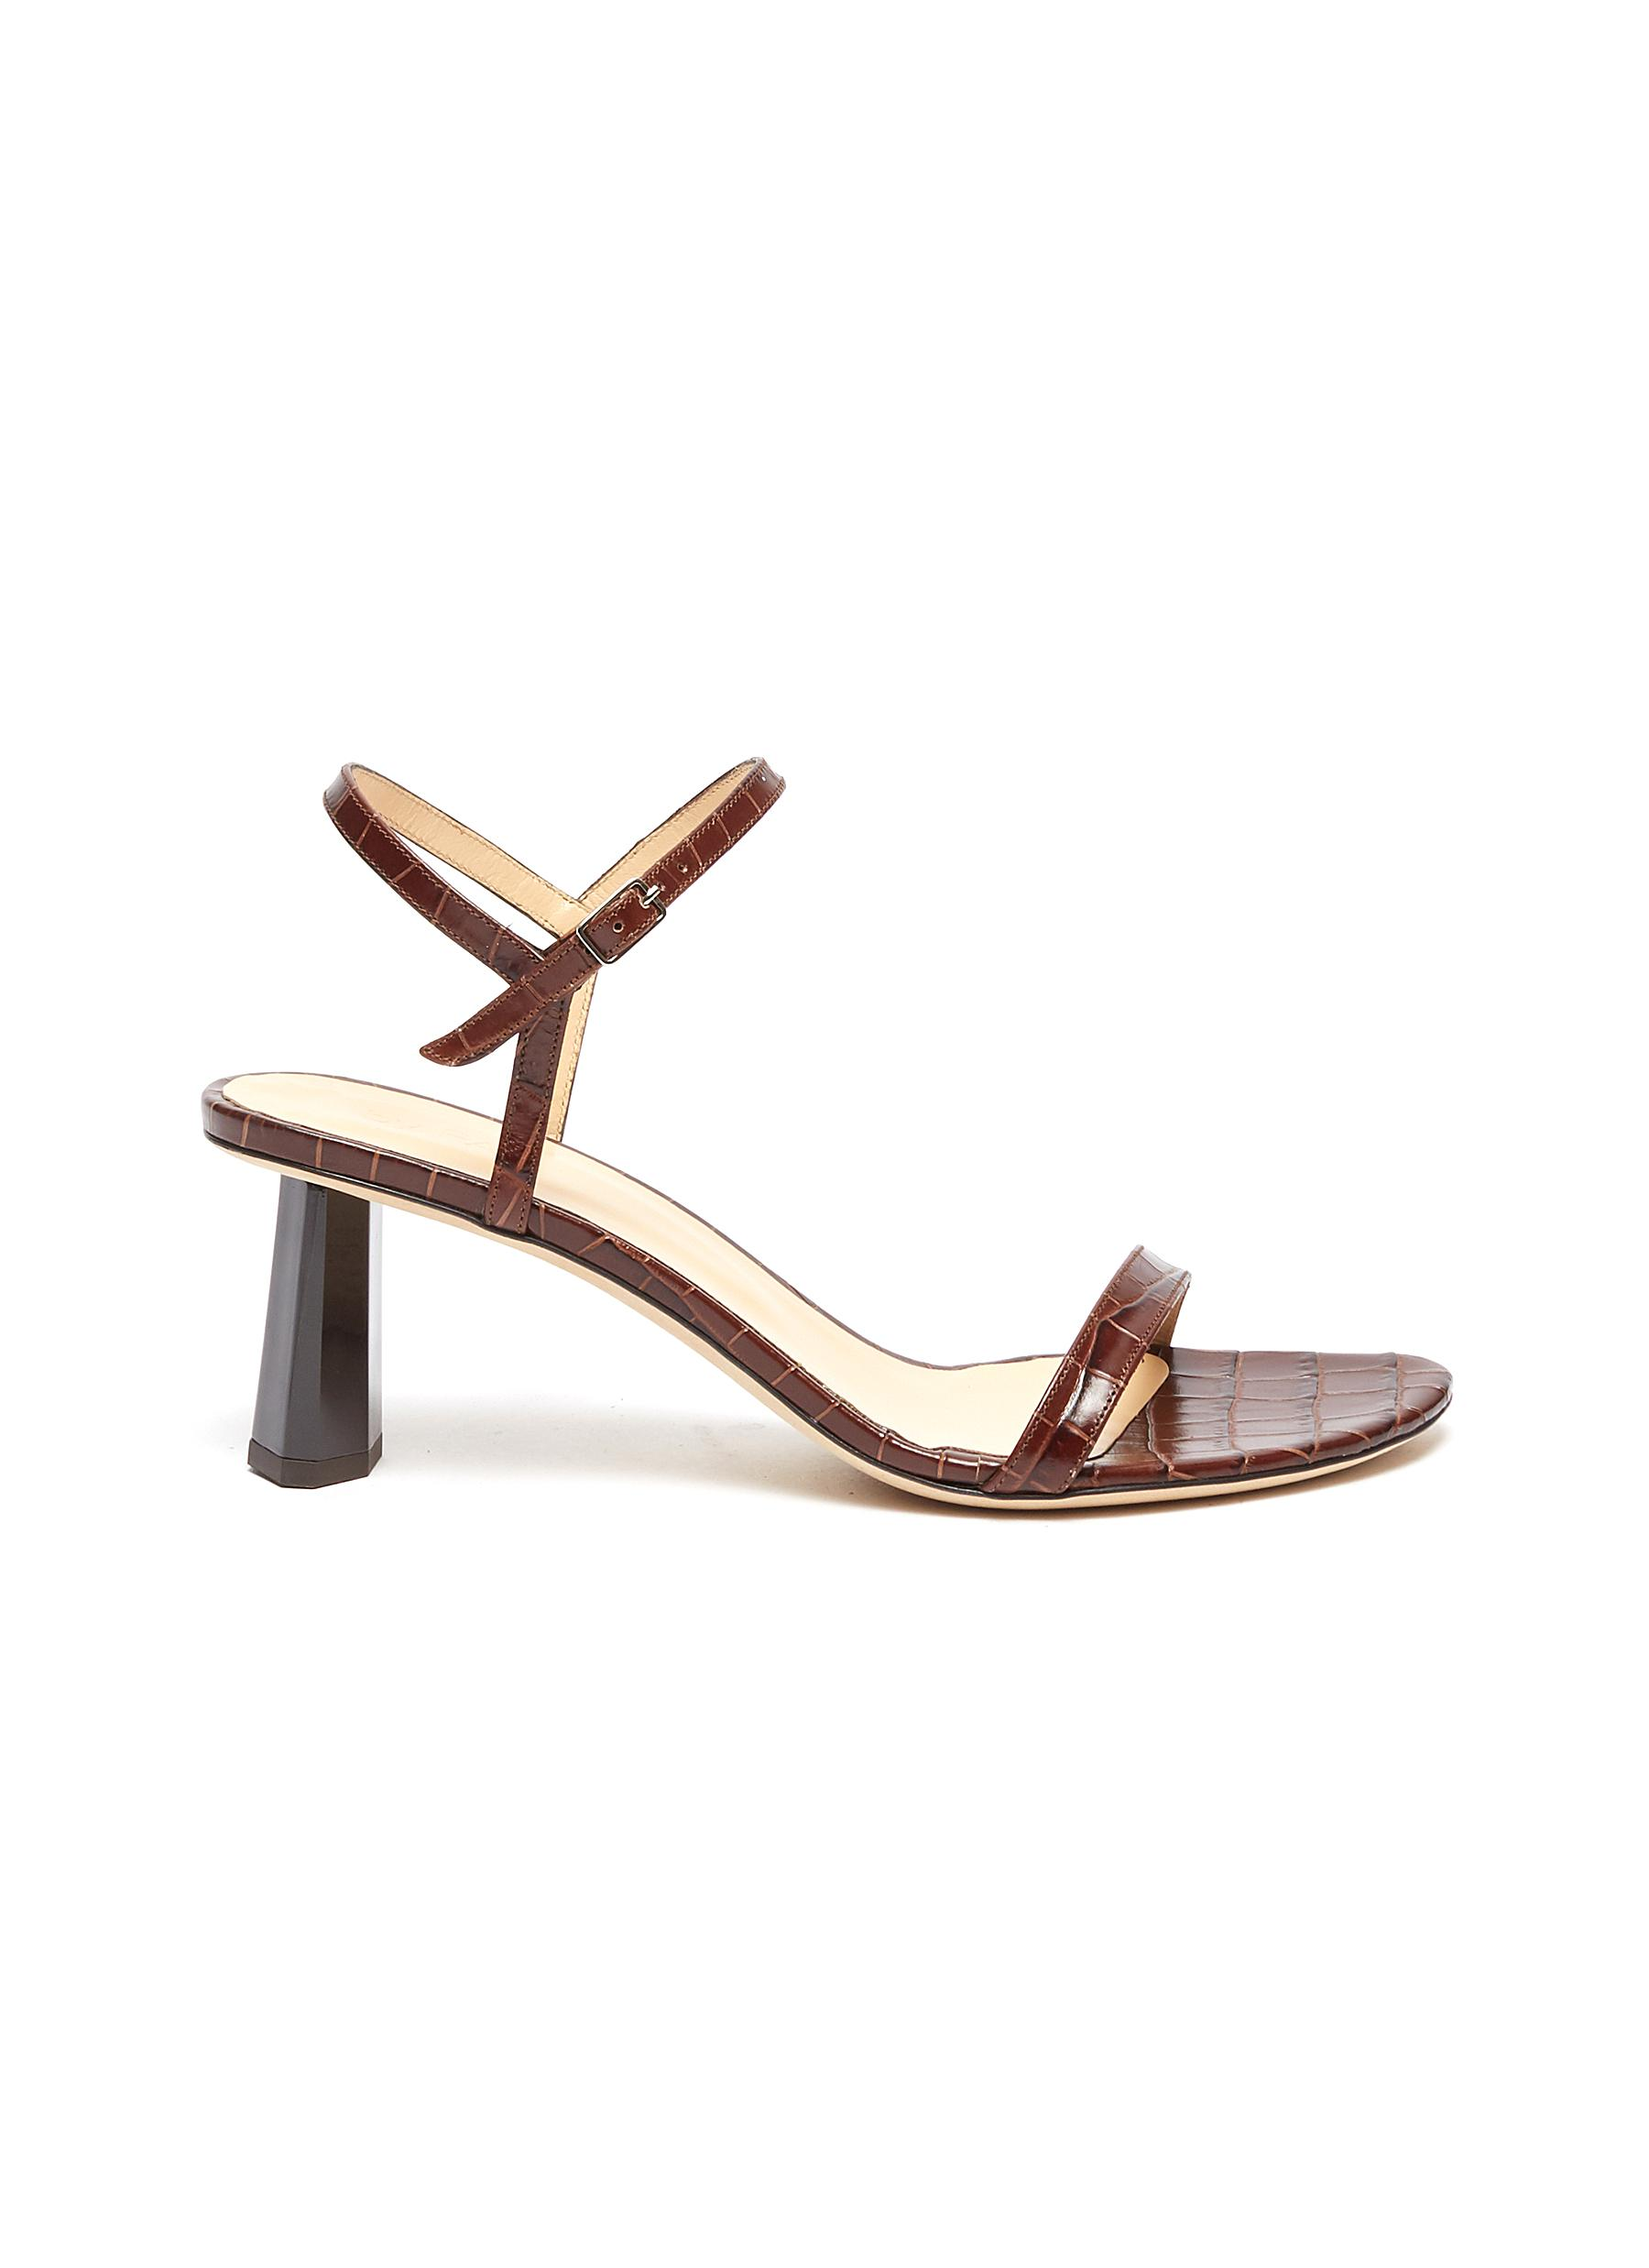 Magnolia ankle strap croc embossed patent leather sandals by By Far